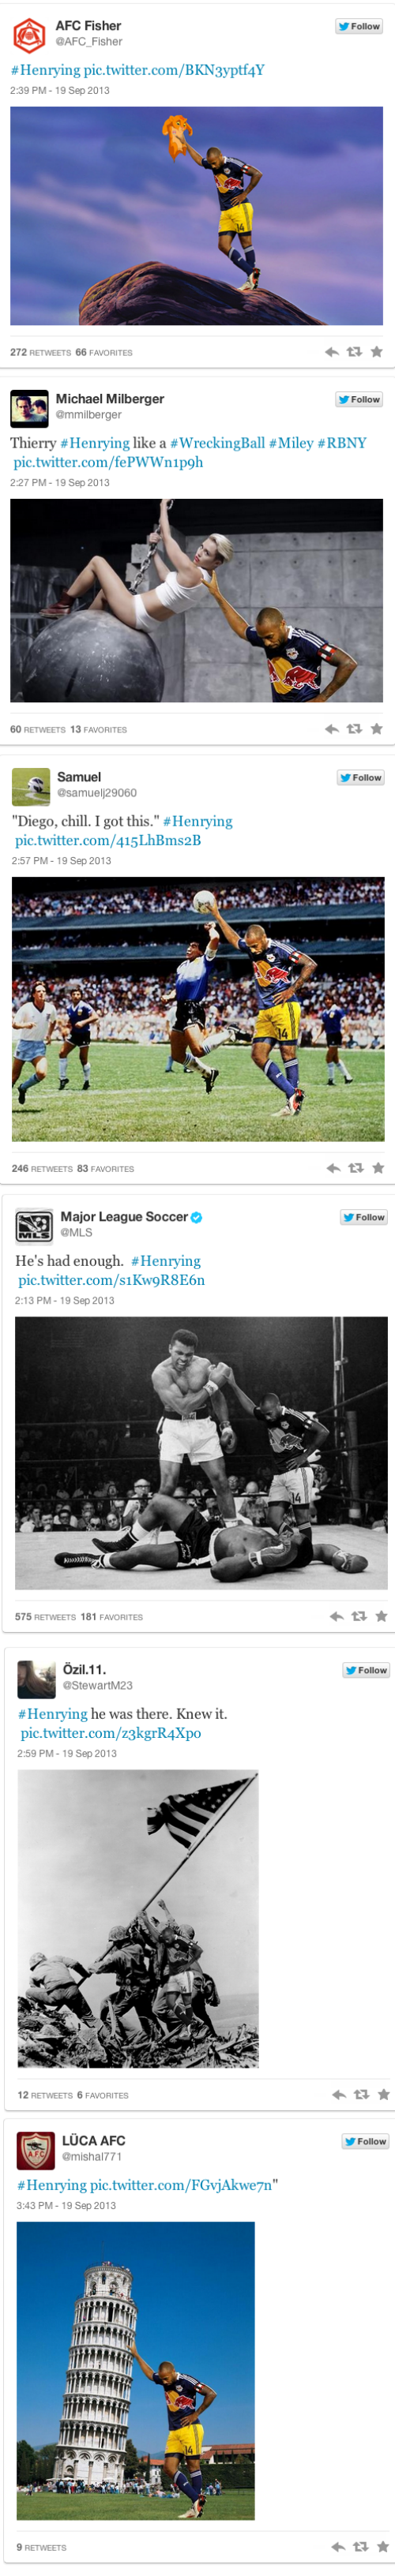 photo fad,thierry henry,mls,soccer,henrying,g rated,win